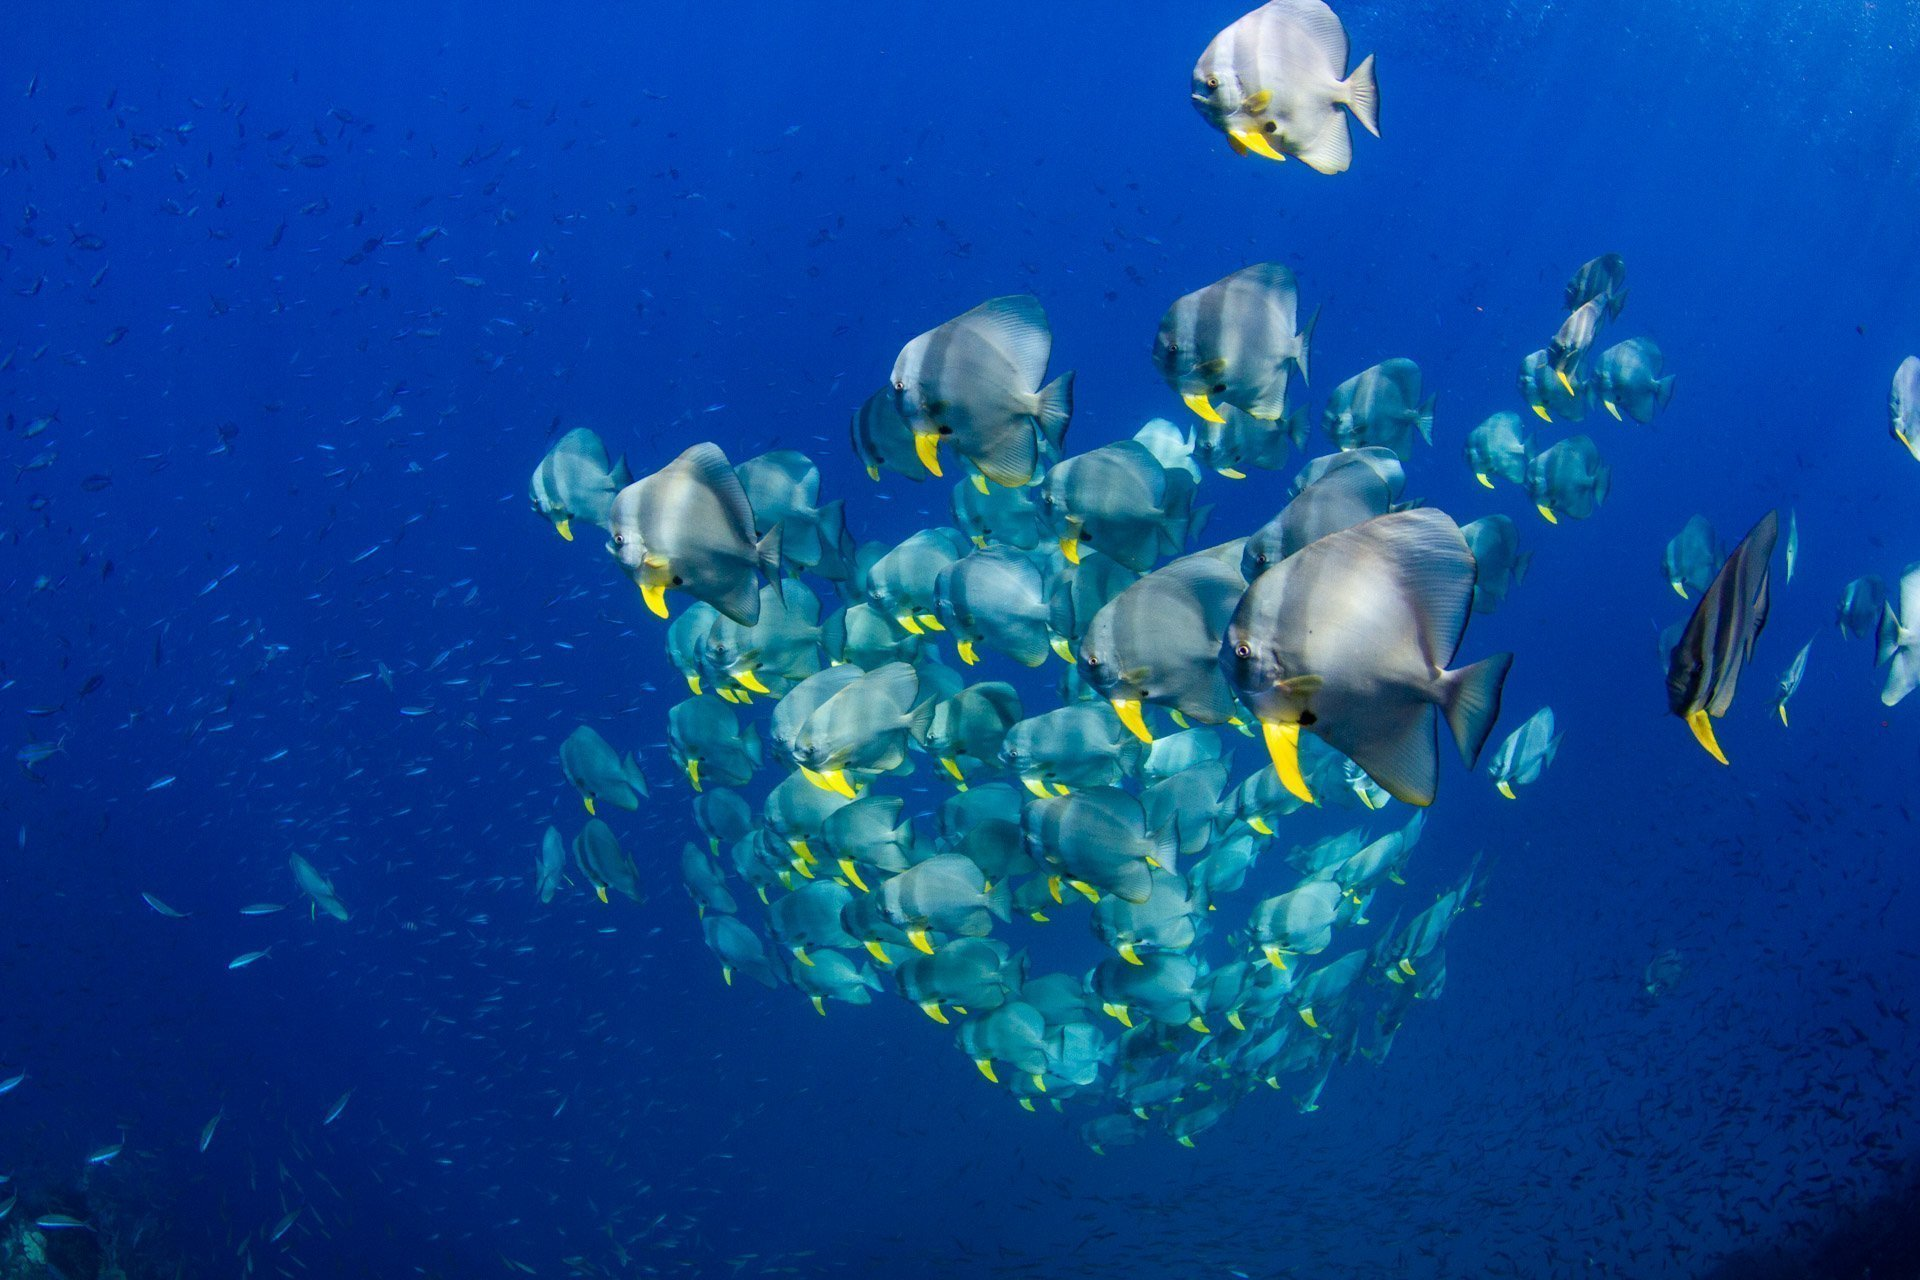 large school of batfish in blue water